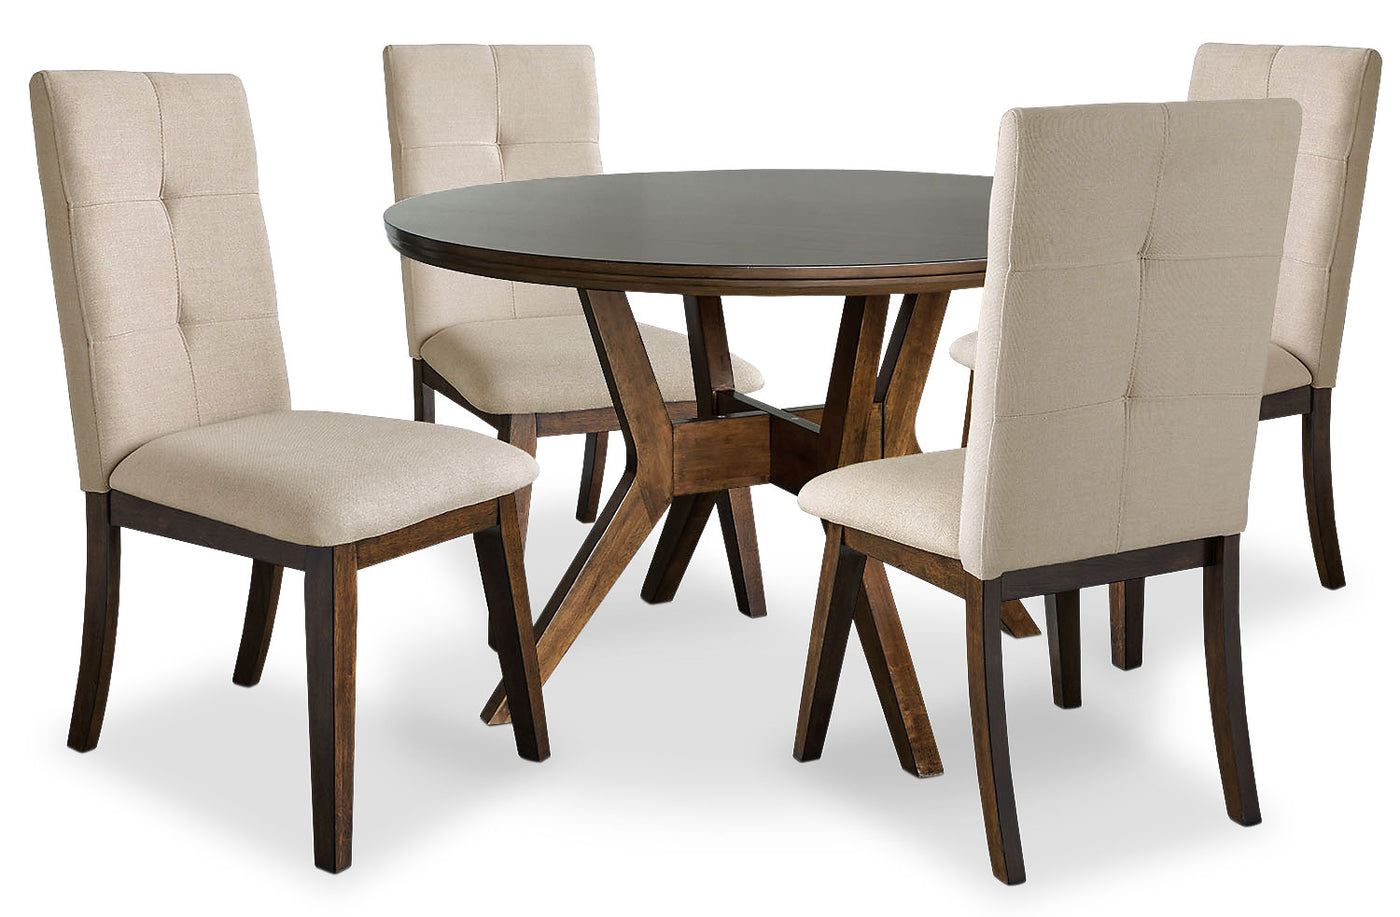 Chelsea 11-Piece Round Dining Table Package with Beige Chairs